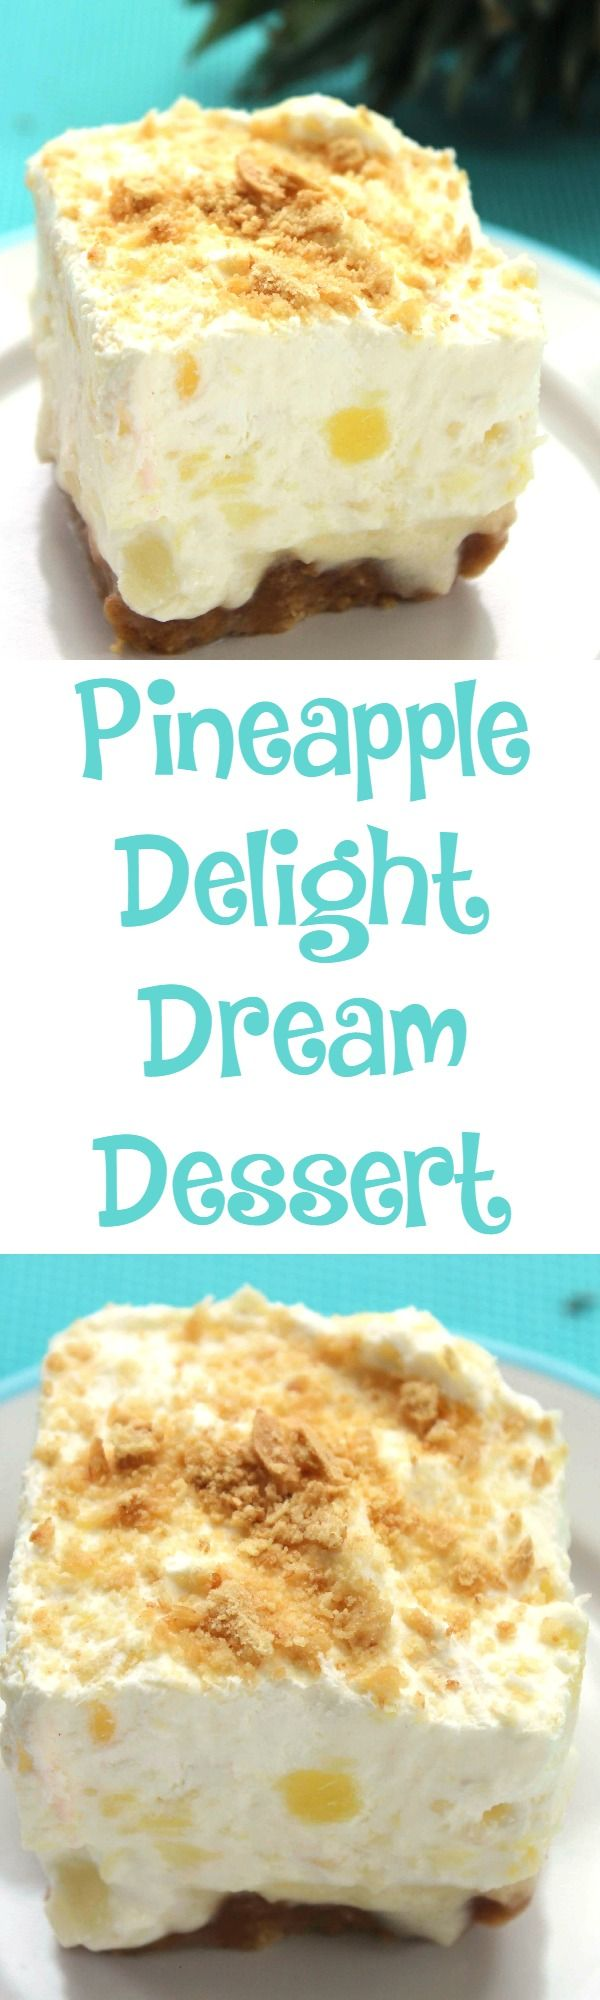 Pineapple Delight Dream Dessert